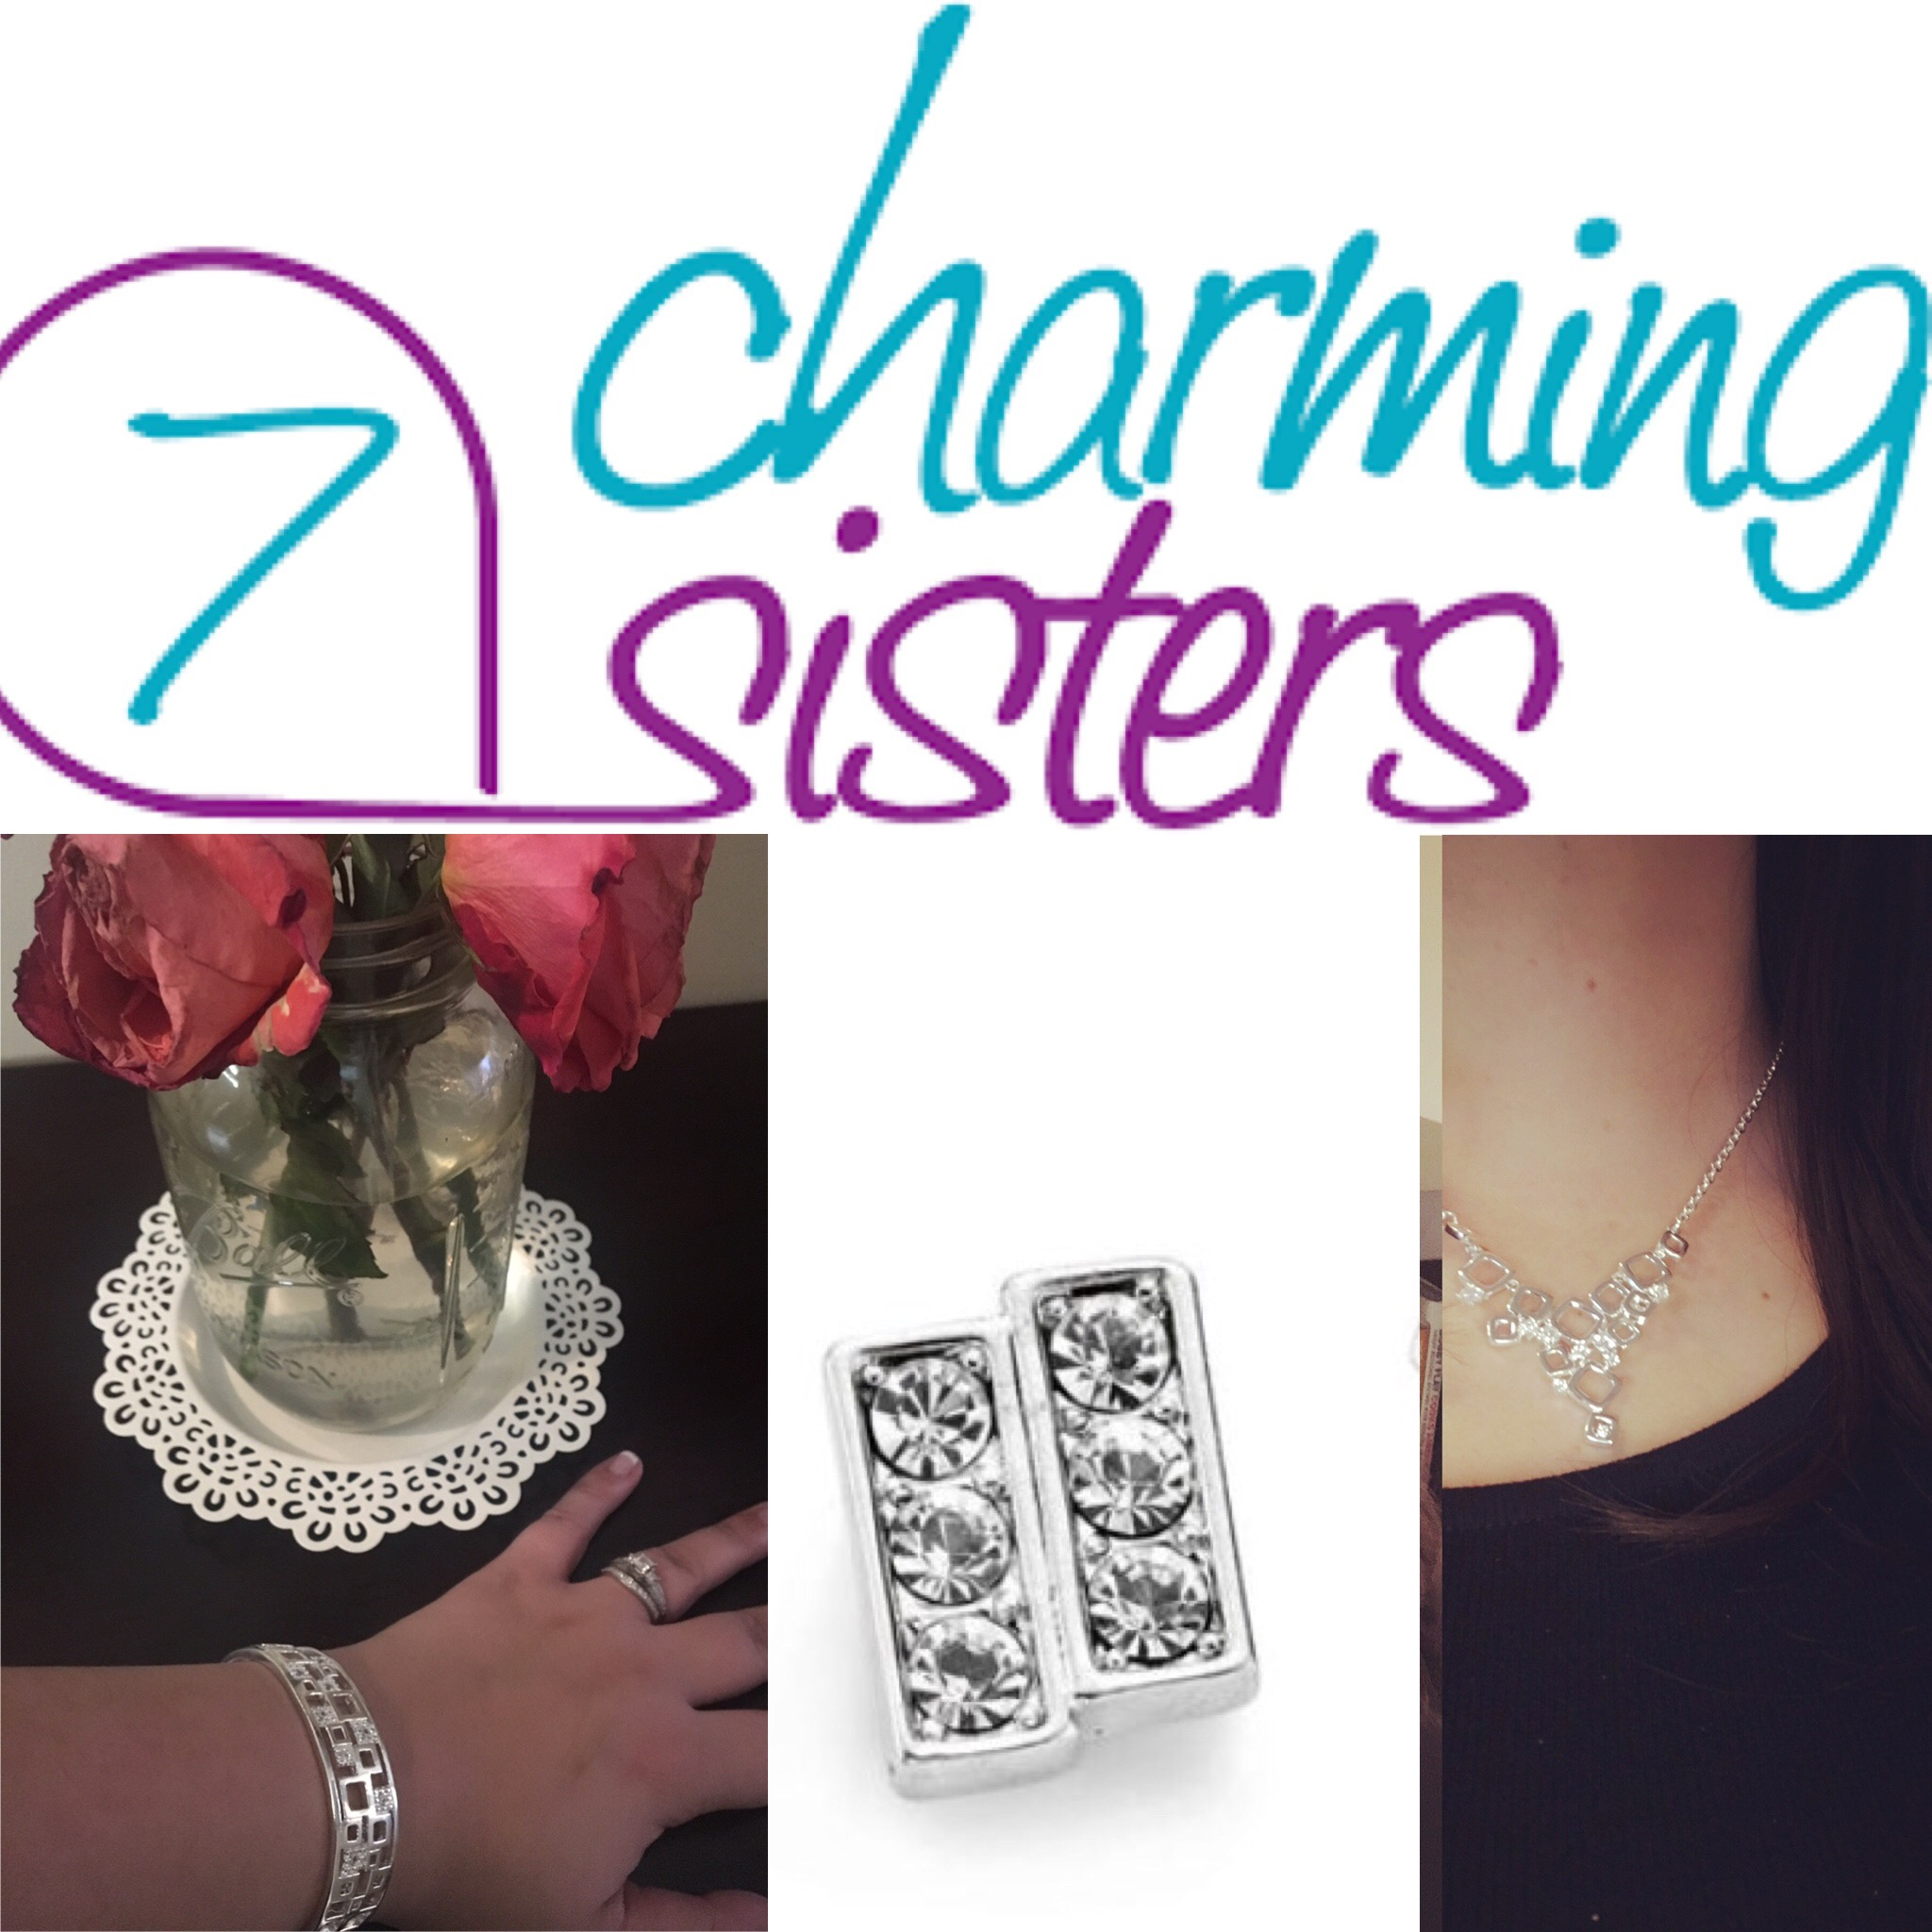 Add Some Sparkle with 7 Charming Sisters!